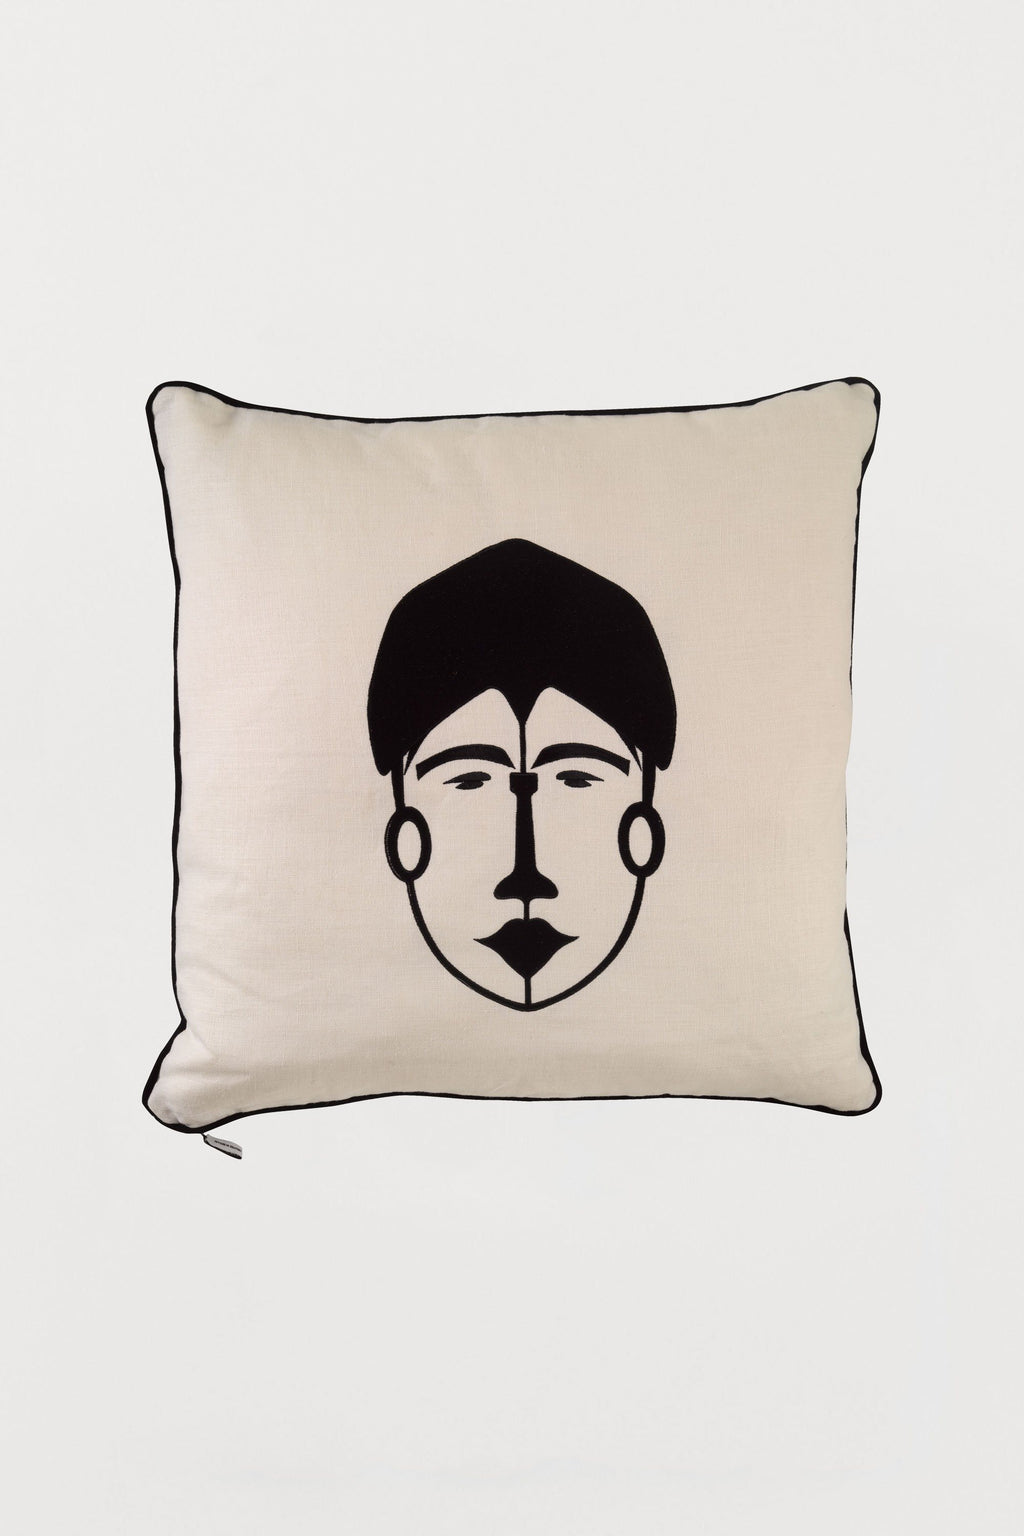 Embroidered Cushion African Mask Woman B - Bianca Elgar